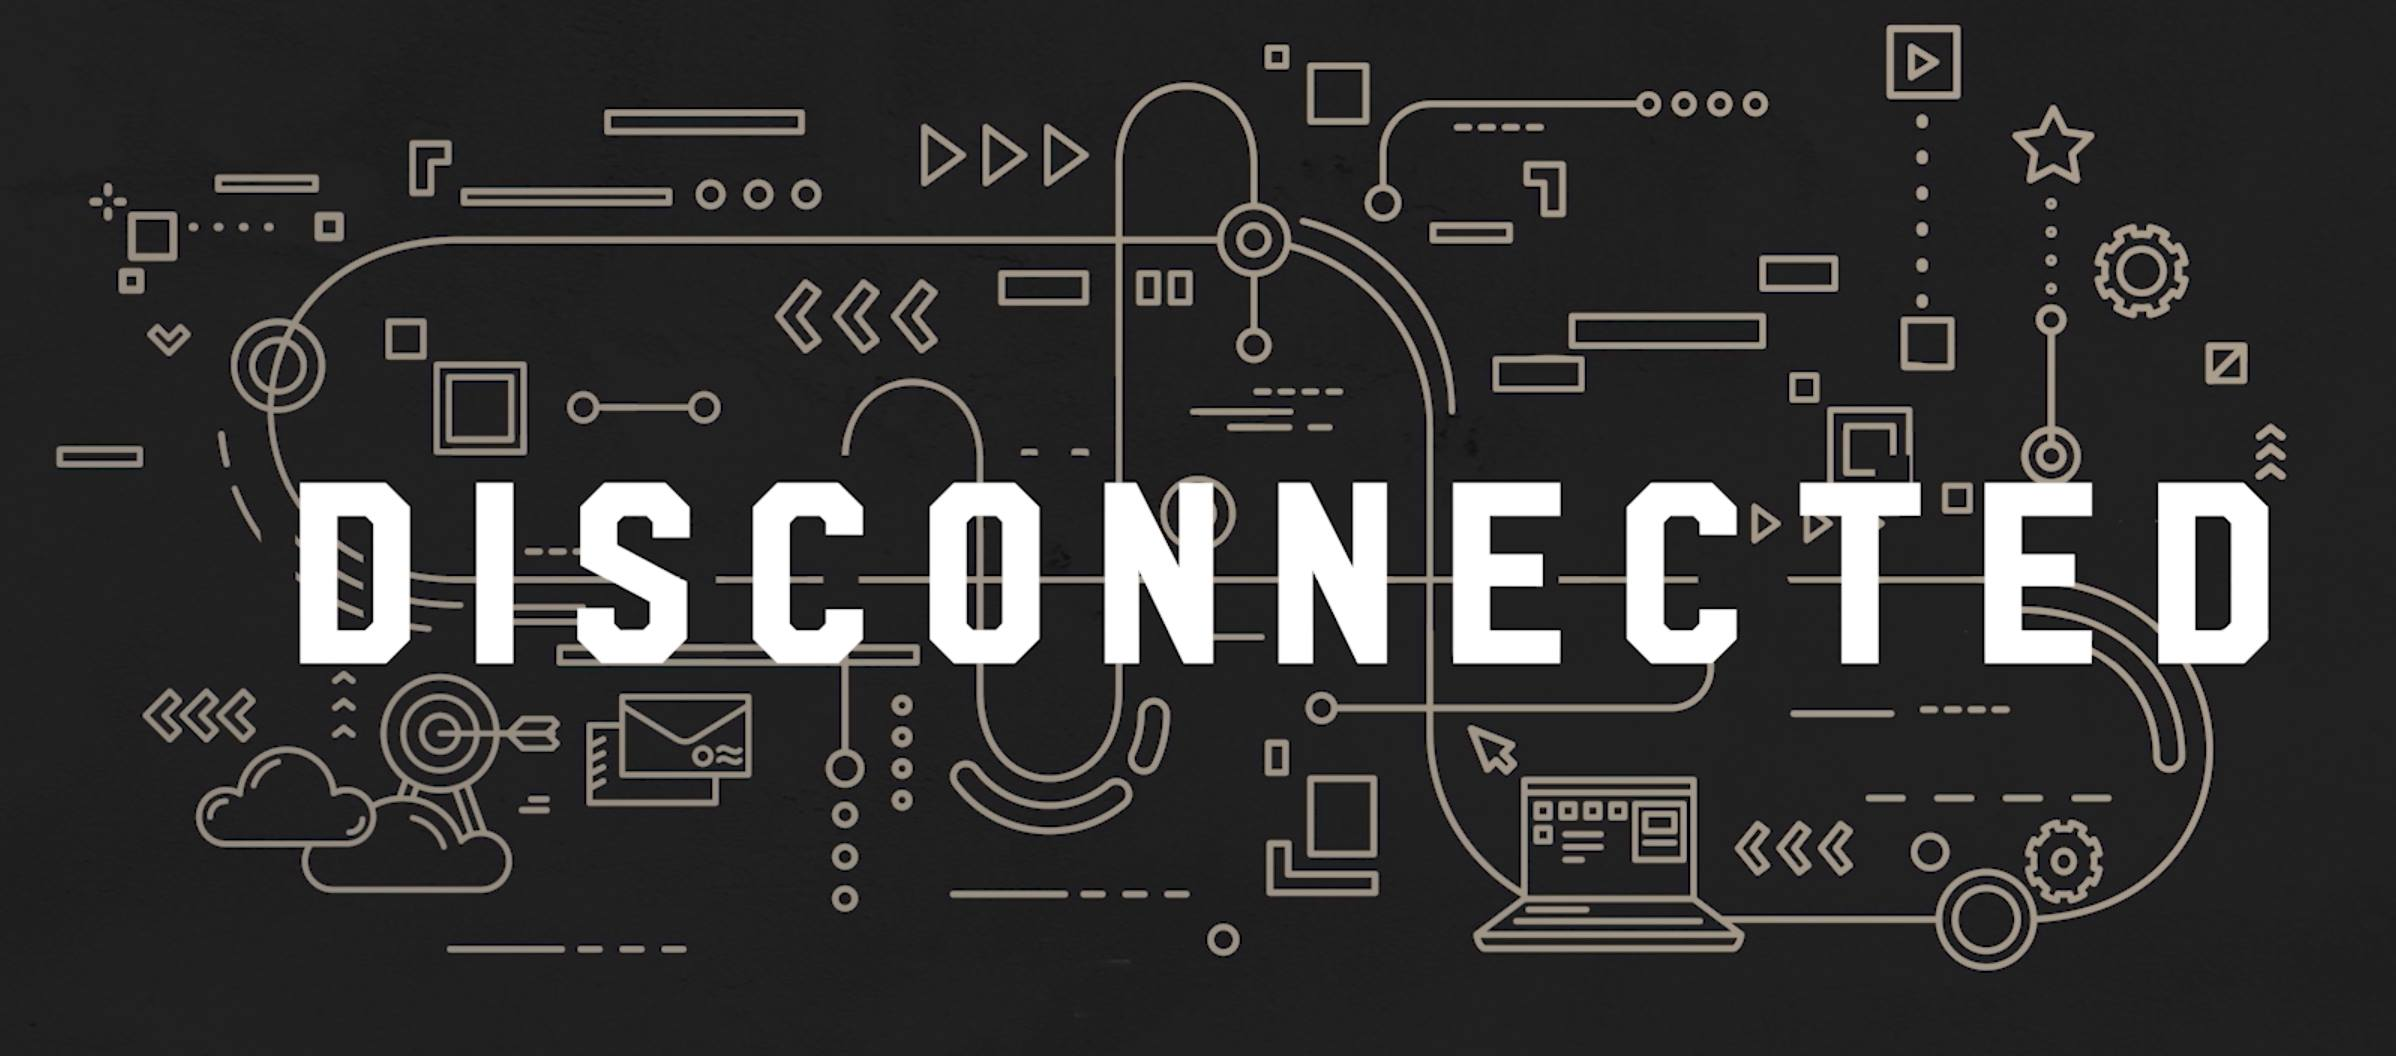 Disconnected - A series through the book of Genesis.